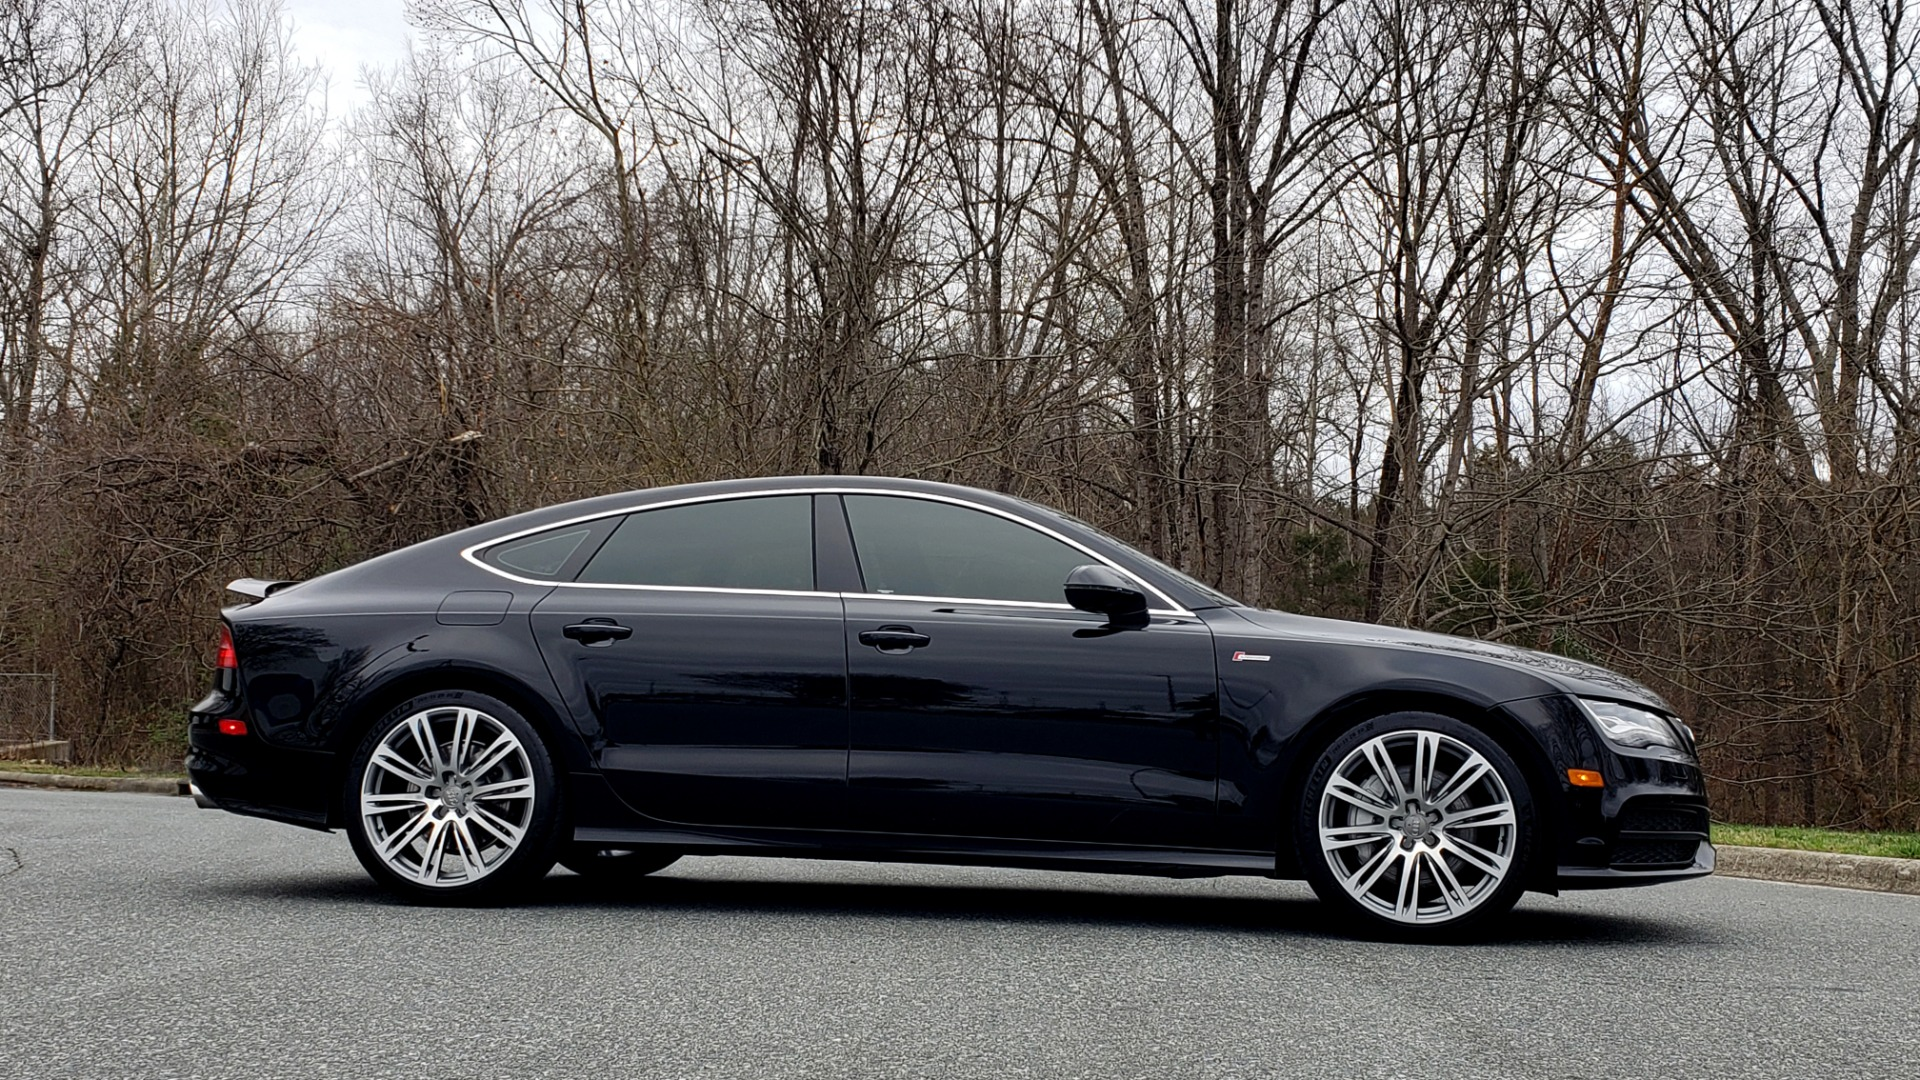 Used 2014 Audi A7 3.0 PRESTIGE / NAV / SUNROOF / BOSE / REARVIEW for sale Sold at Formula Imports in Charlotte NC 28227 6